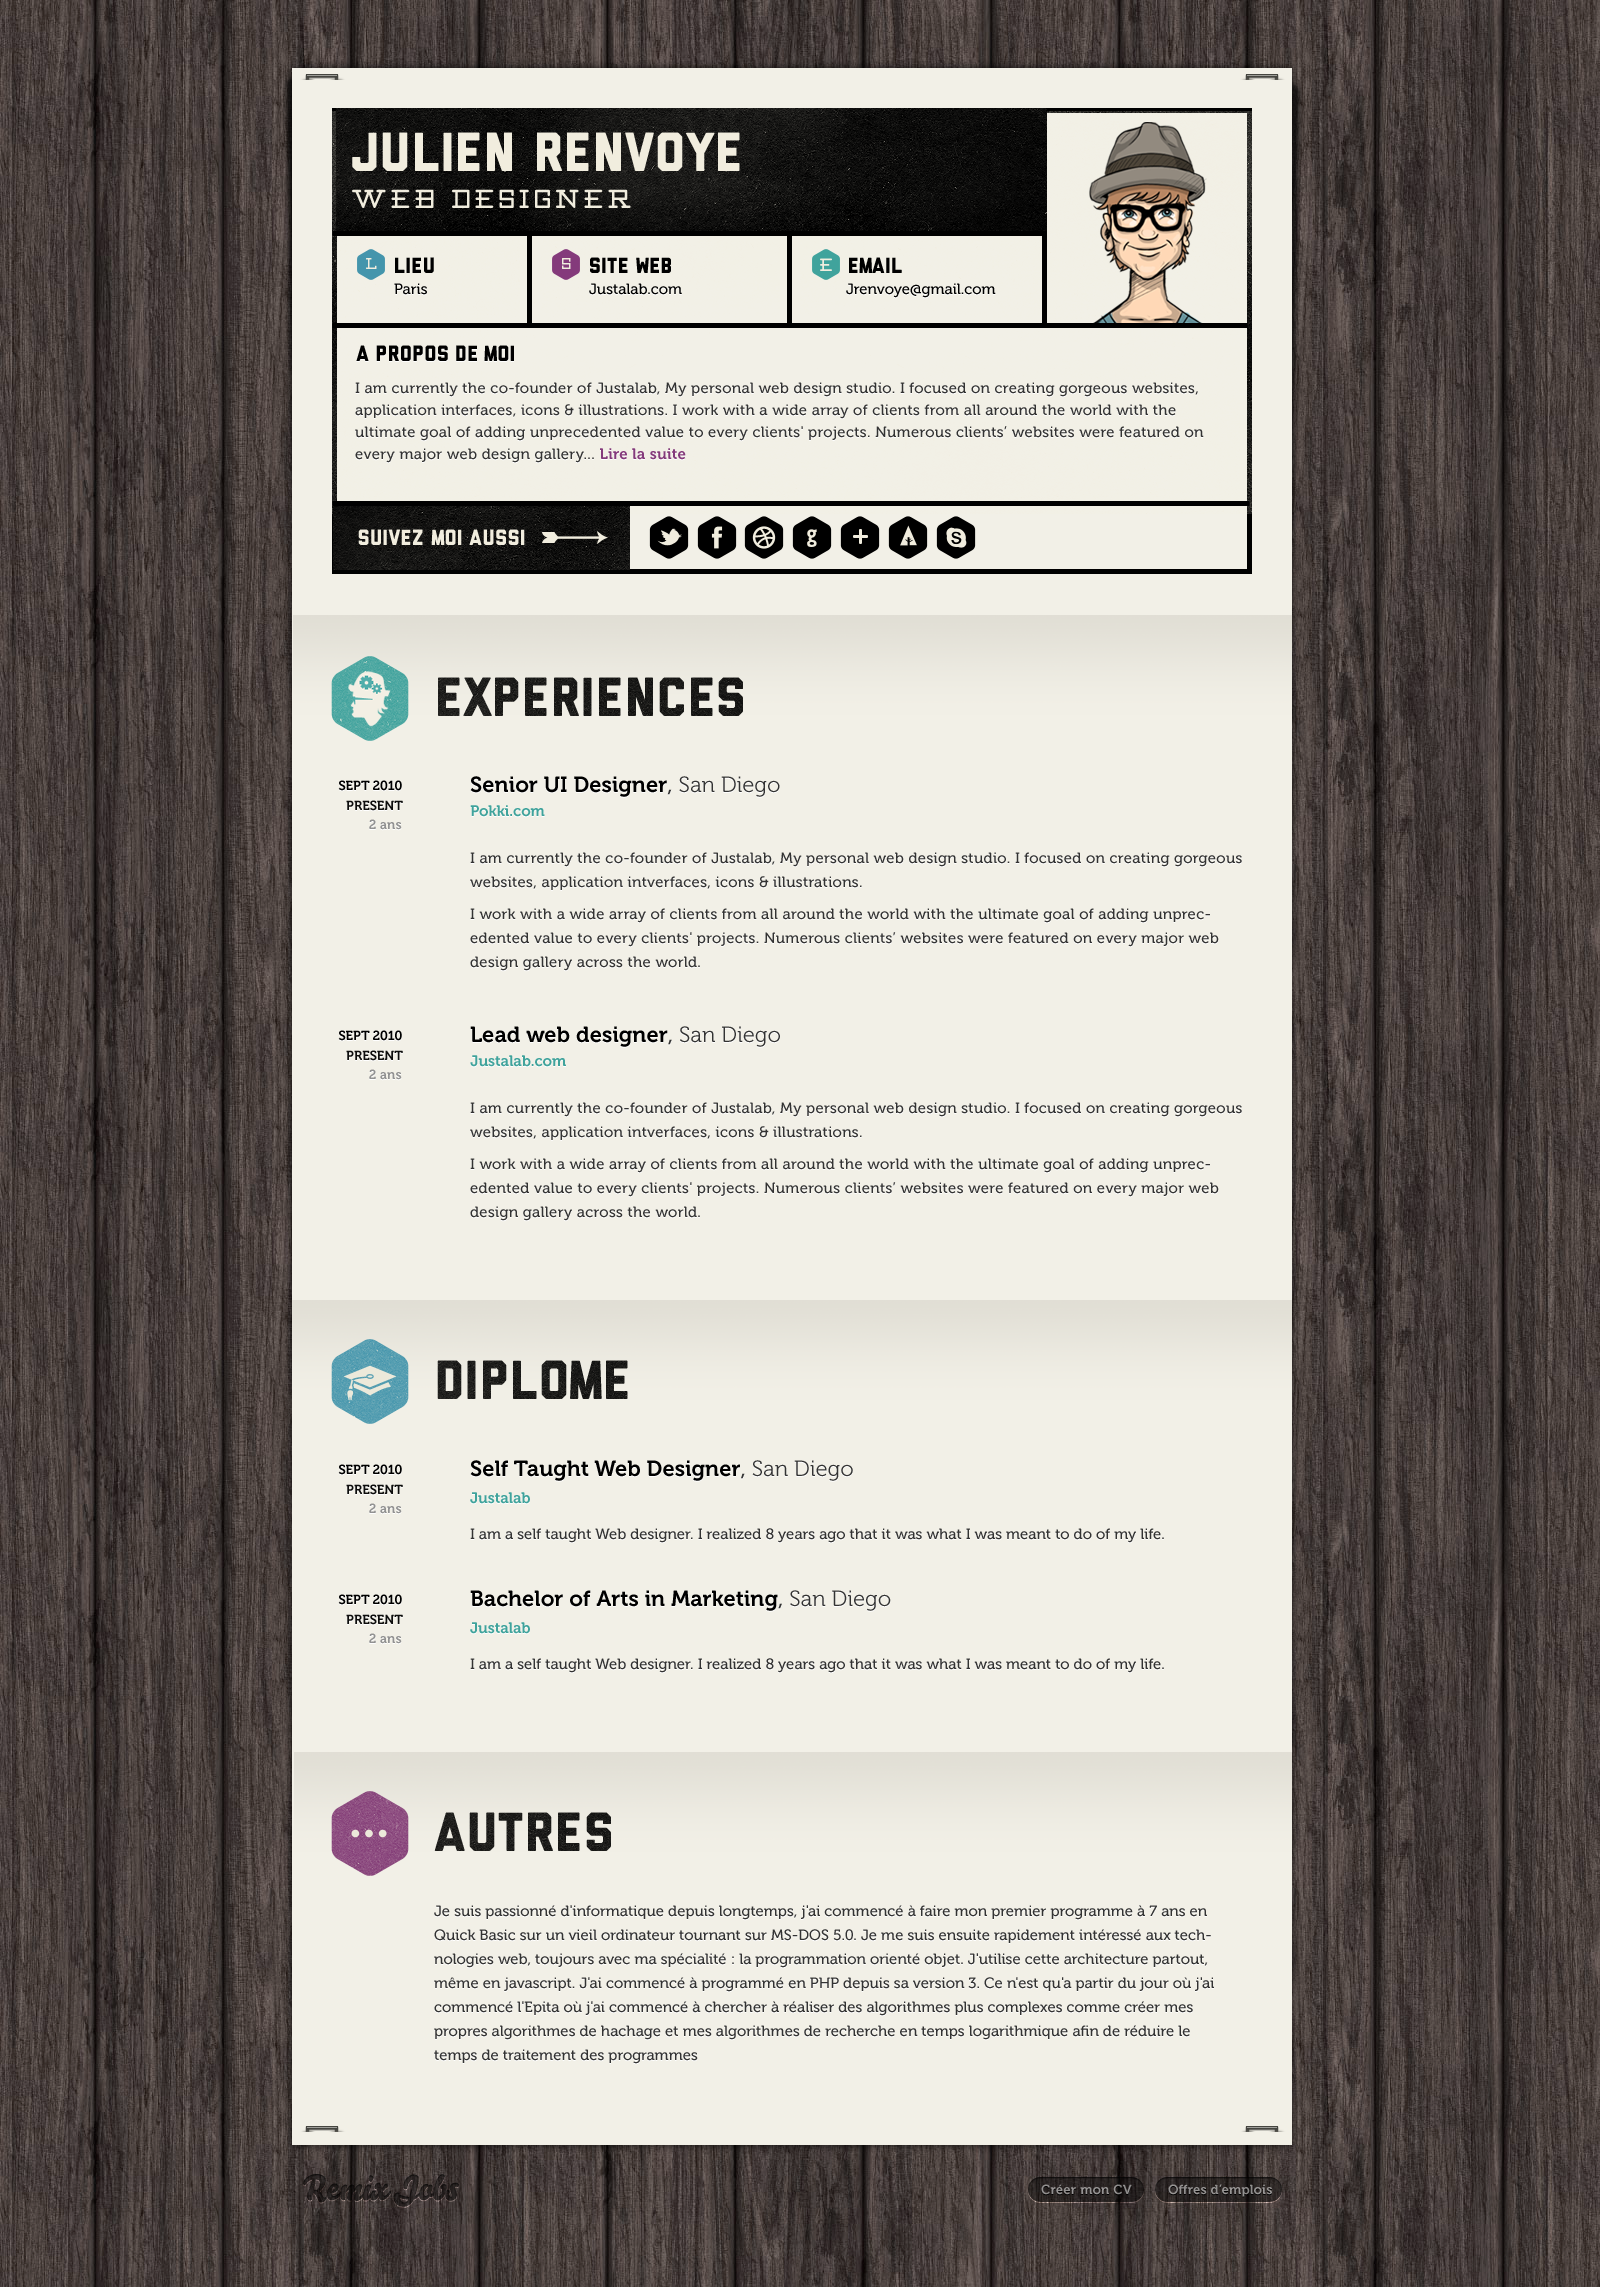 another great resume concept for more ideas search aaron sheppard another great resume concept for more ideas search aaron sheppard look at my